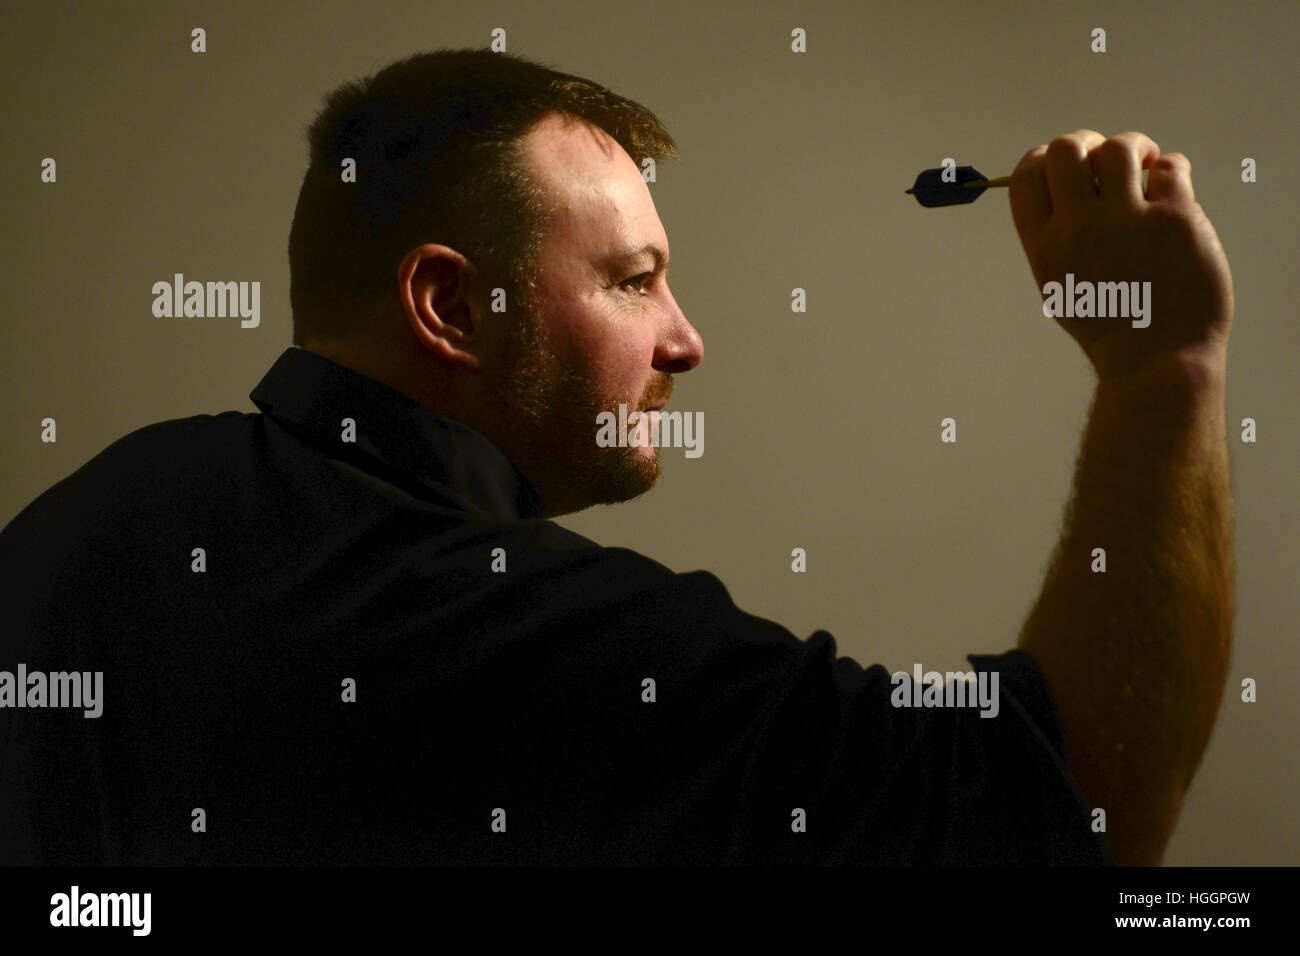 Darts player Brian 'Doggy' Dawson at his home in Thurnscoe near Barnsley, South Yorkshire, UK. - Stock Image